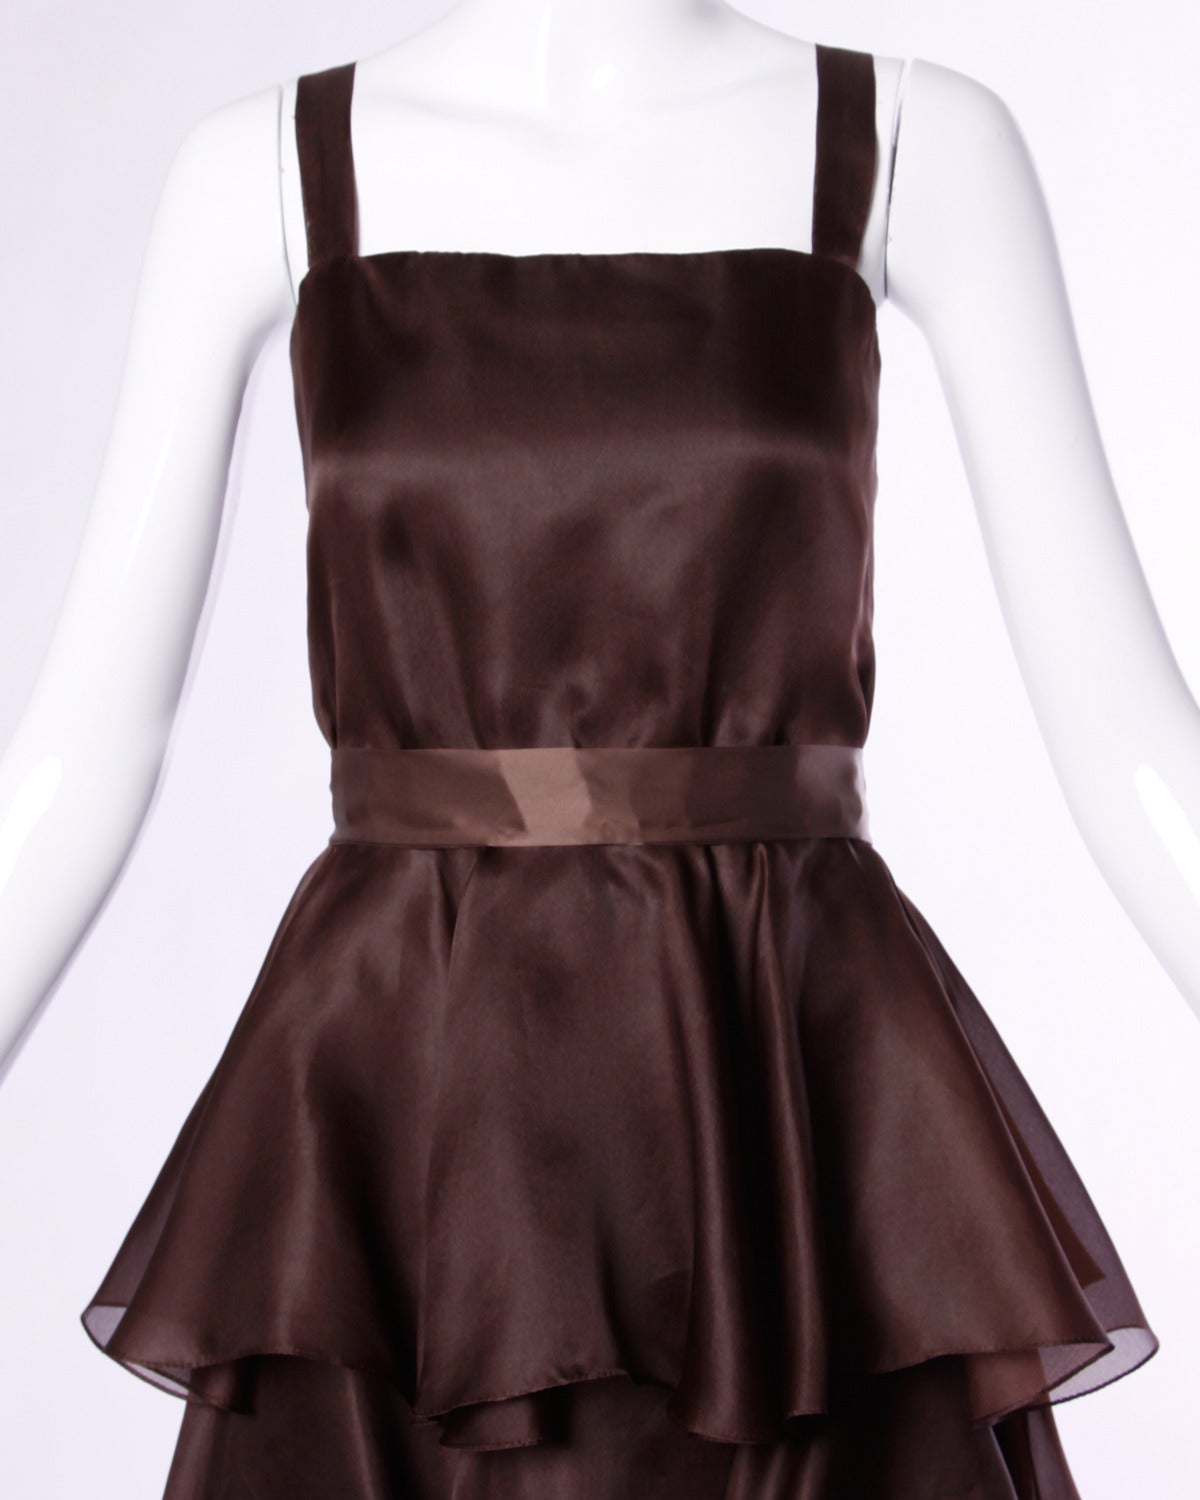 Elegant chocolate brown tiered silk party dress by Bill Blass. Simple and chic.